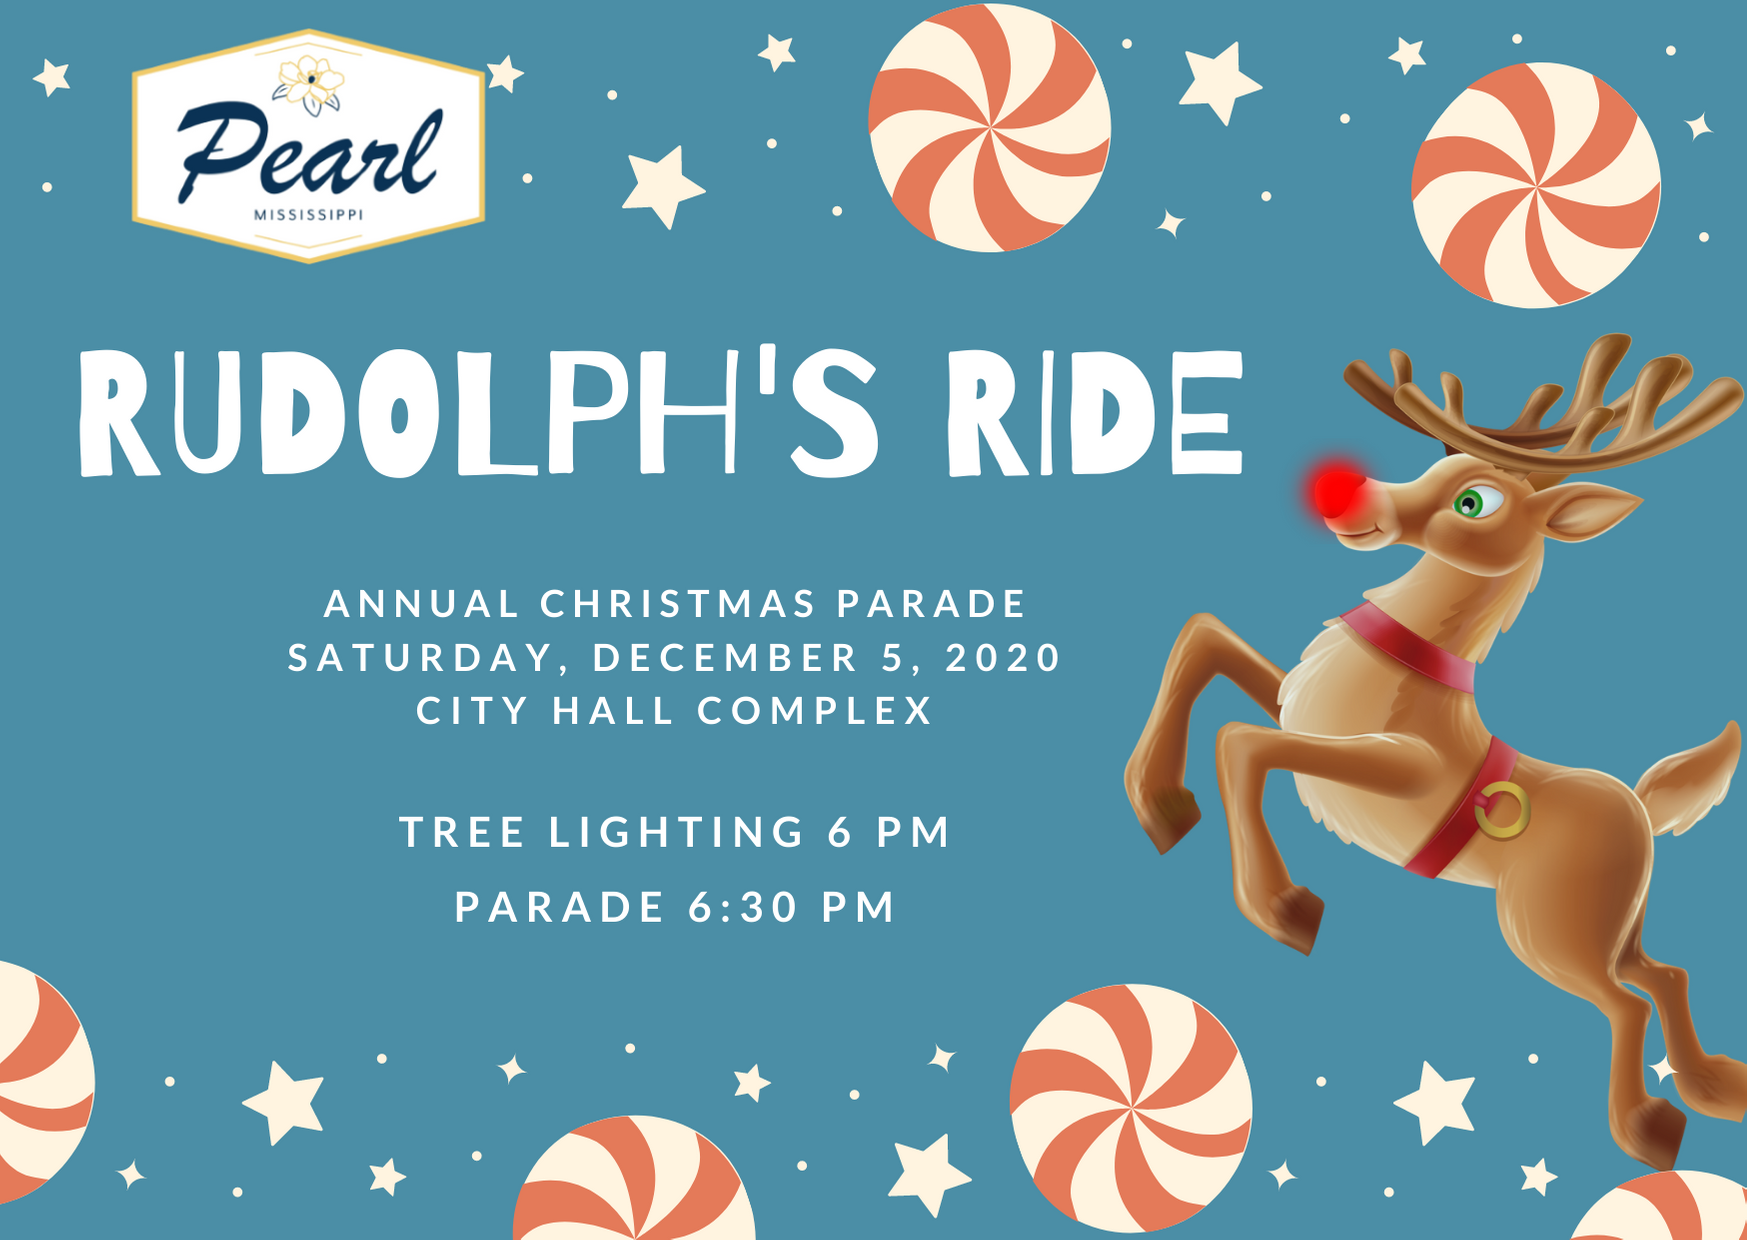 Mississippi Christmas Parades 2020 Pearl Christmas Parade: Rudolph's Ride, Dec. 5, 2020   City of Pearl